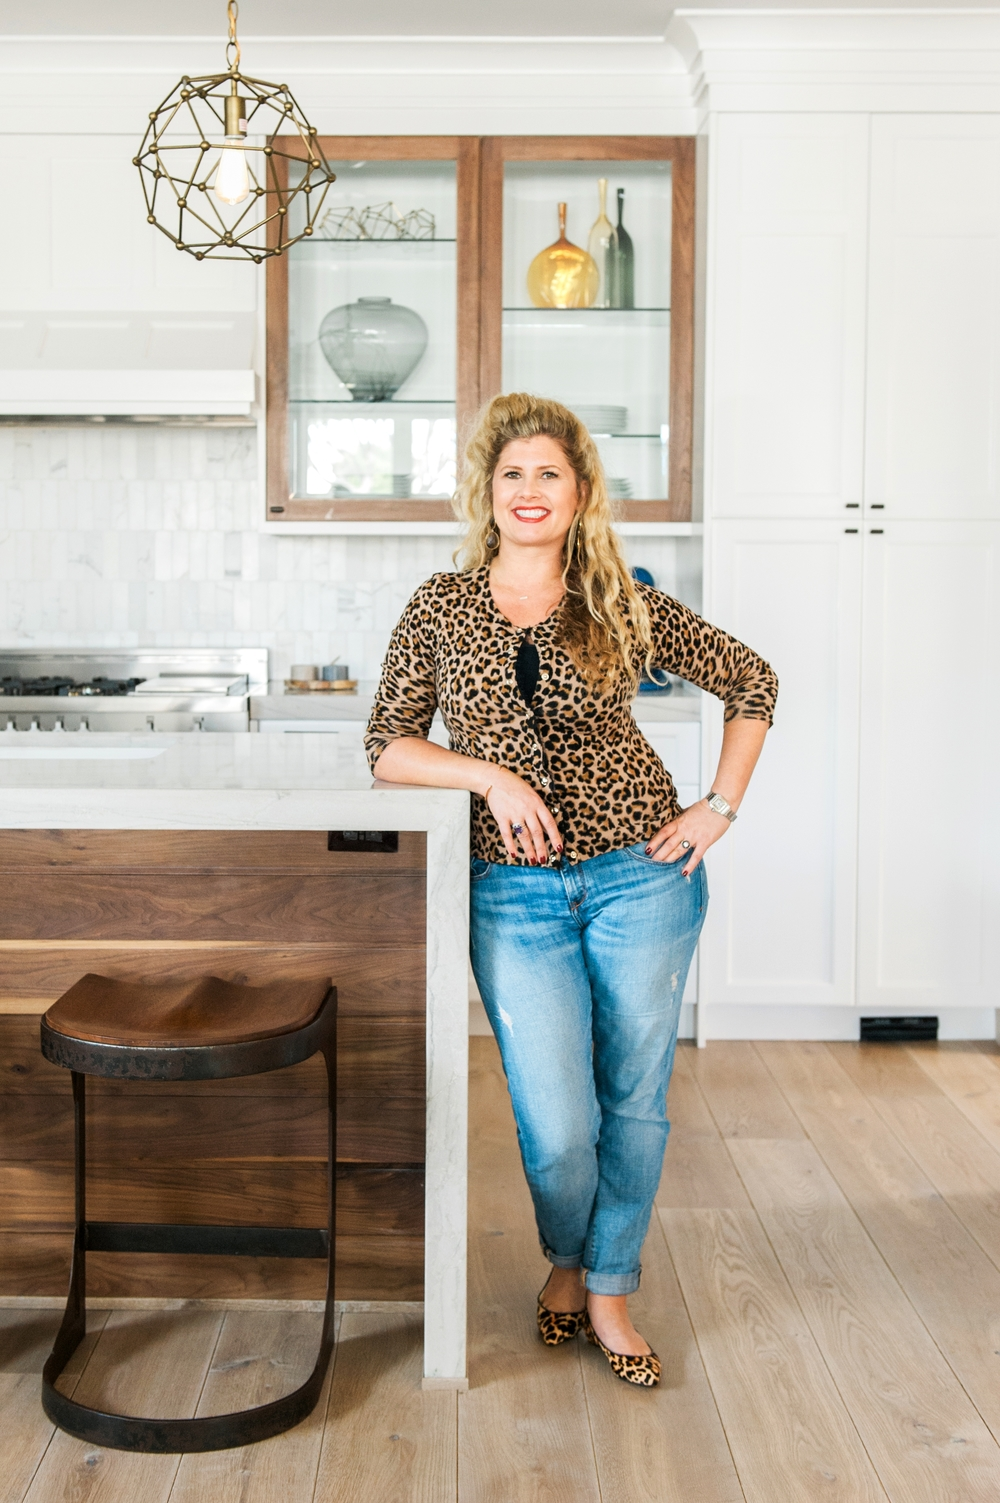 Valerie Saunders, Principal Designer at Sérendipité, poses in her client's newly designed kitchen  photography by: Melissa Brandman